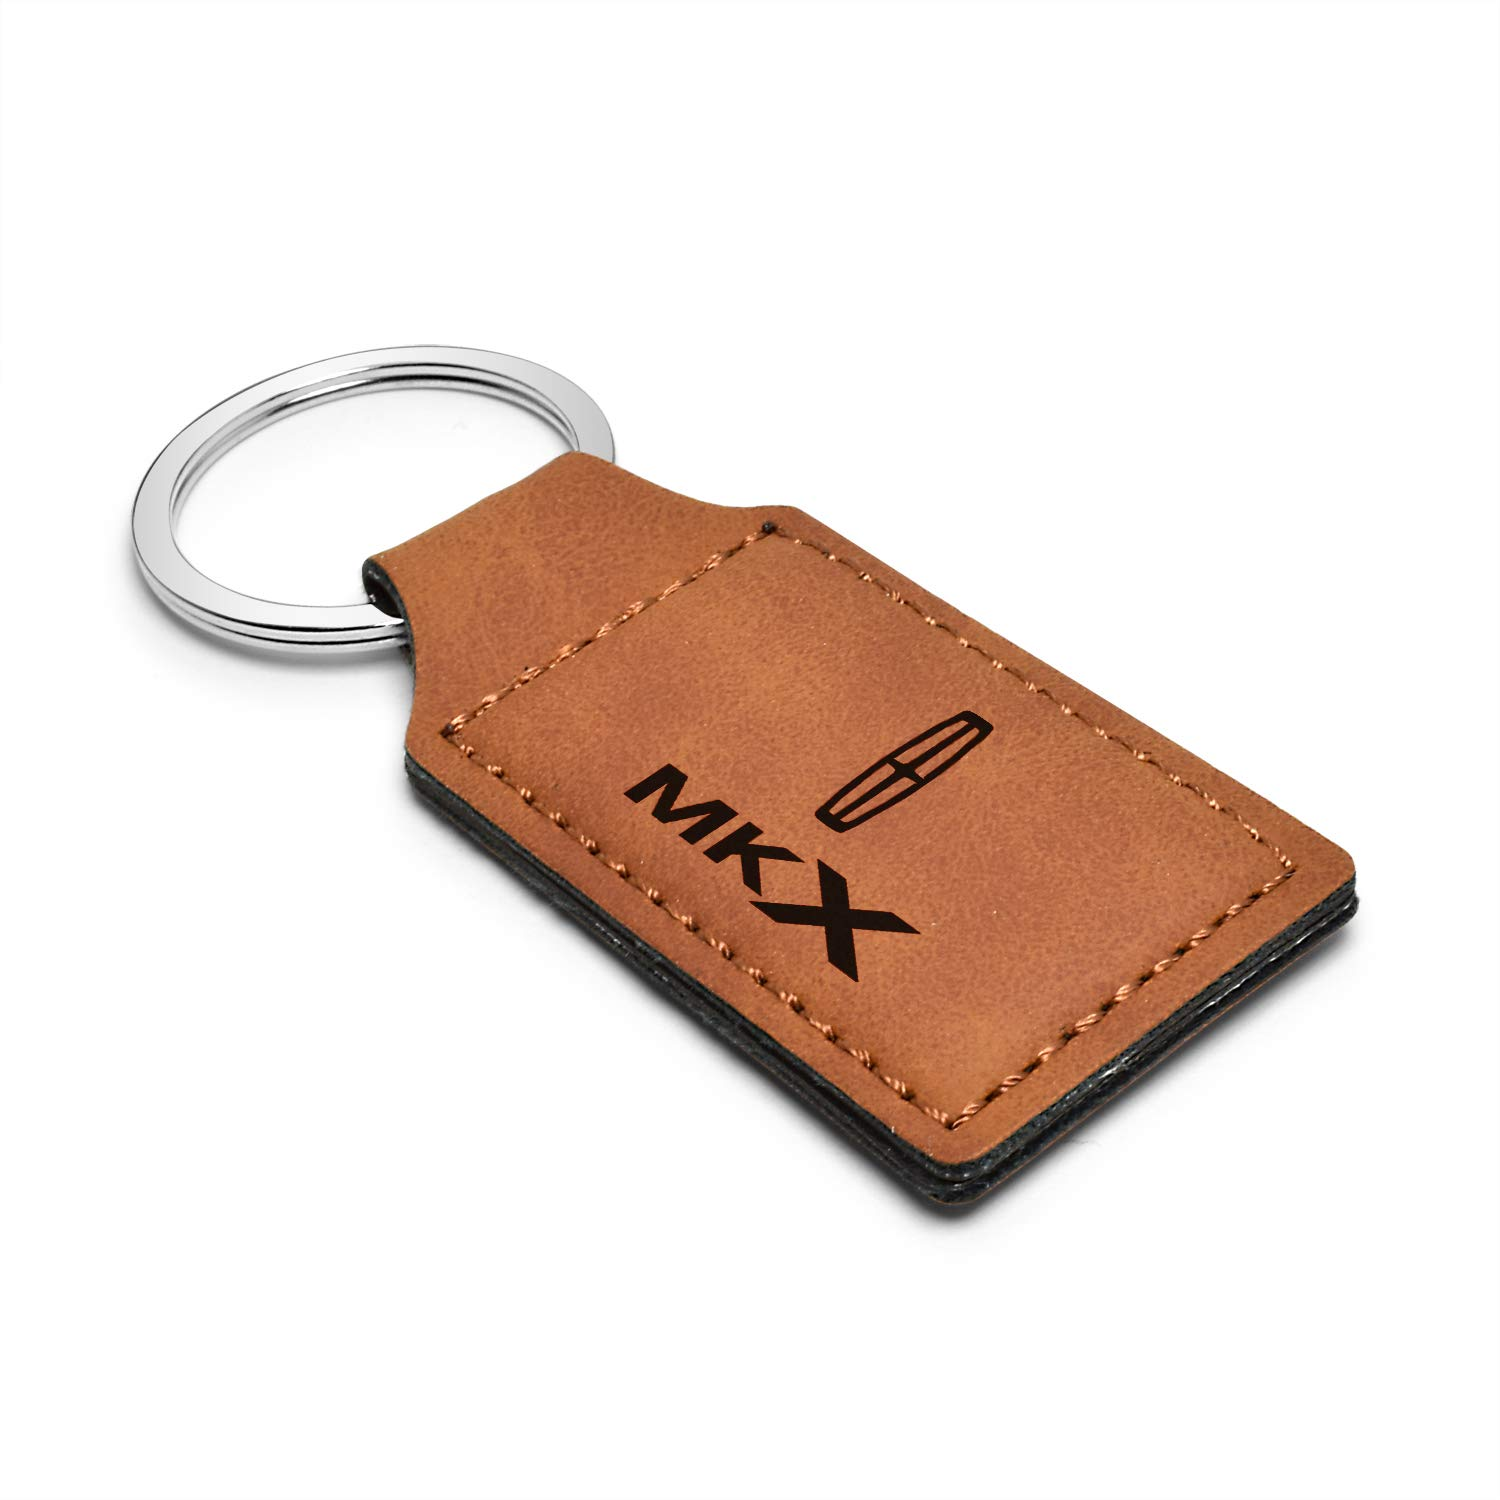 iPick Image Lincoln Rectangular Brown Leather Key Chain MKX